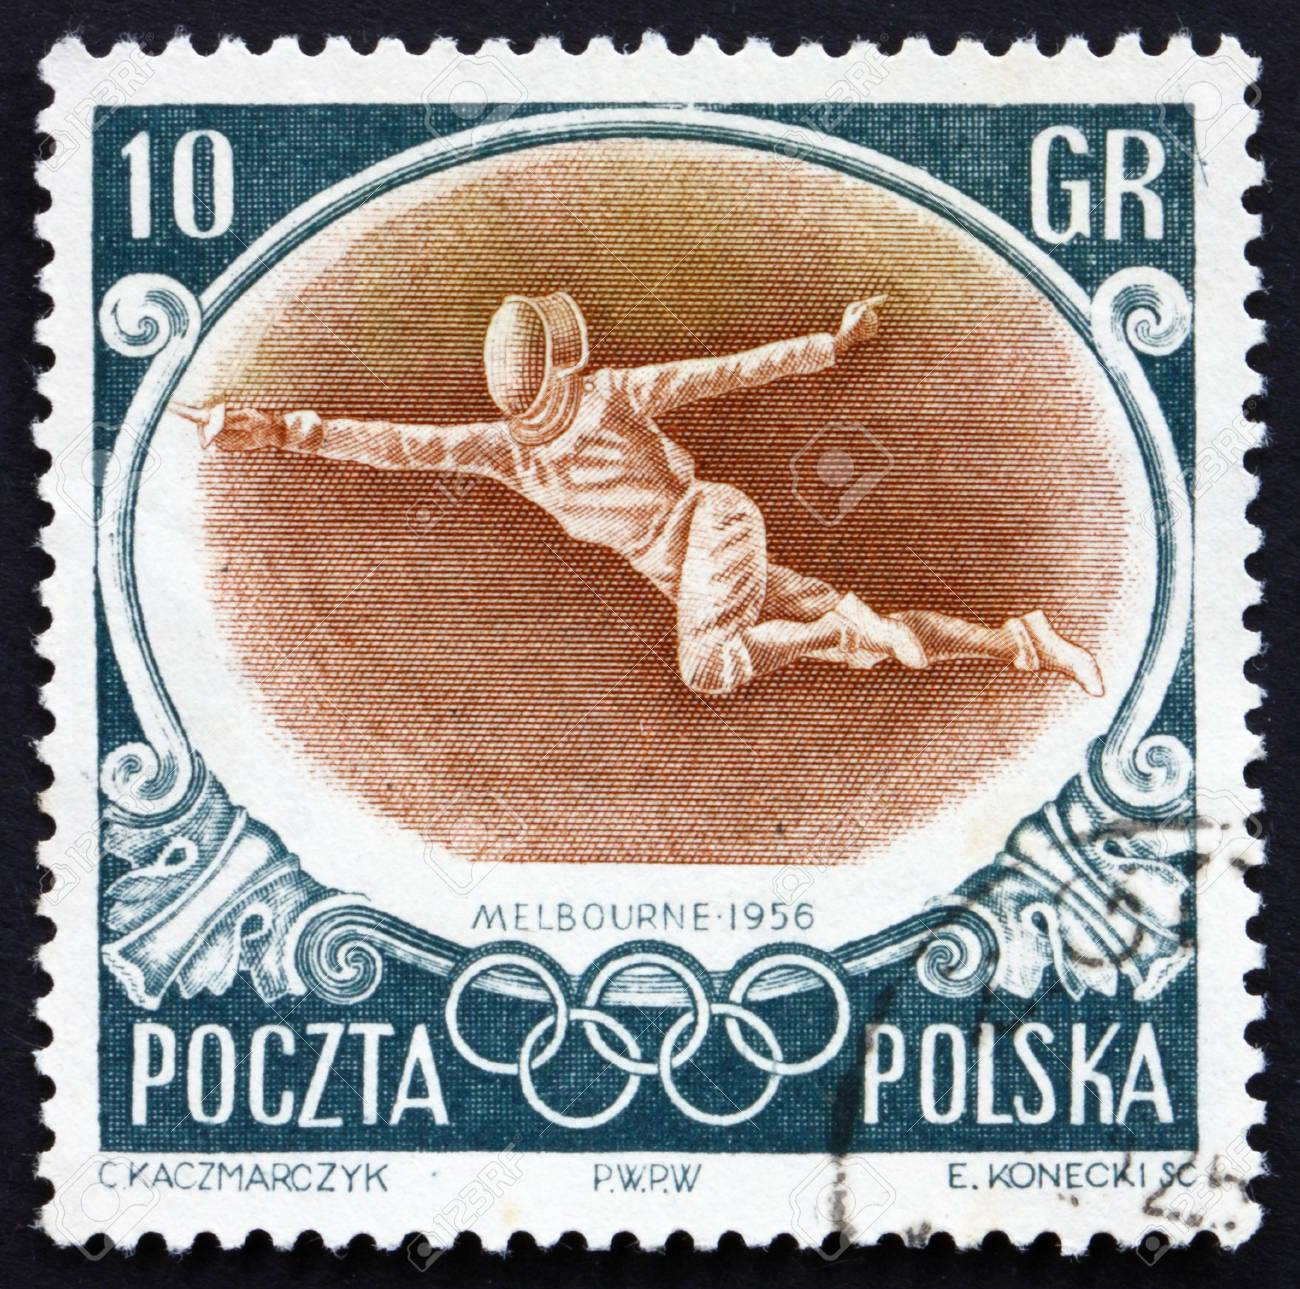 POLAND - CIRCA 1956: a stamp printed in the Poland shows Fencer, Summer Olympic sports, Melbourne 56, circa 1956 Stock Photo - 14224098